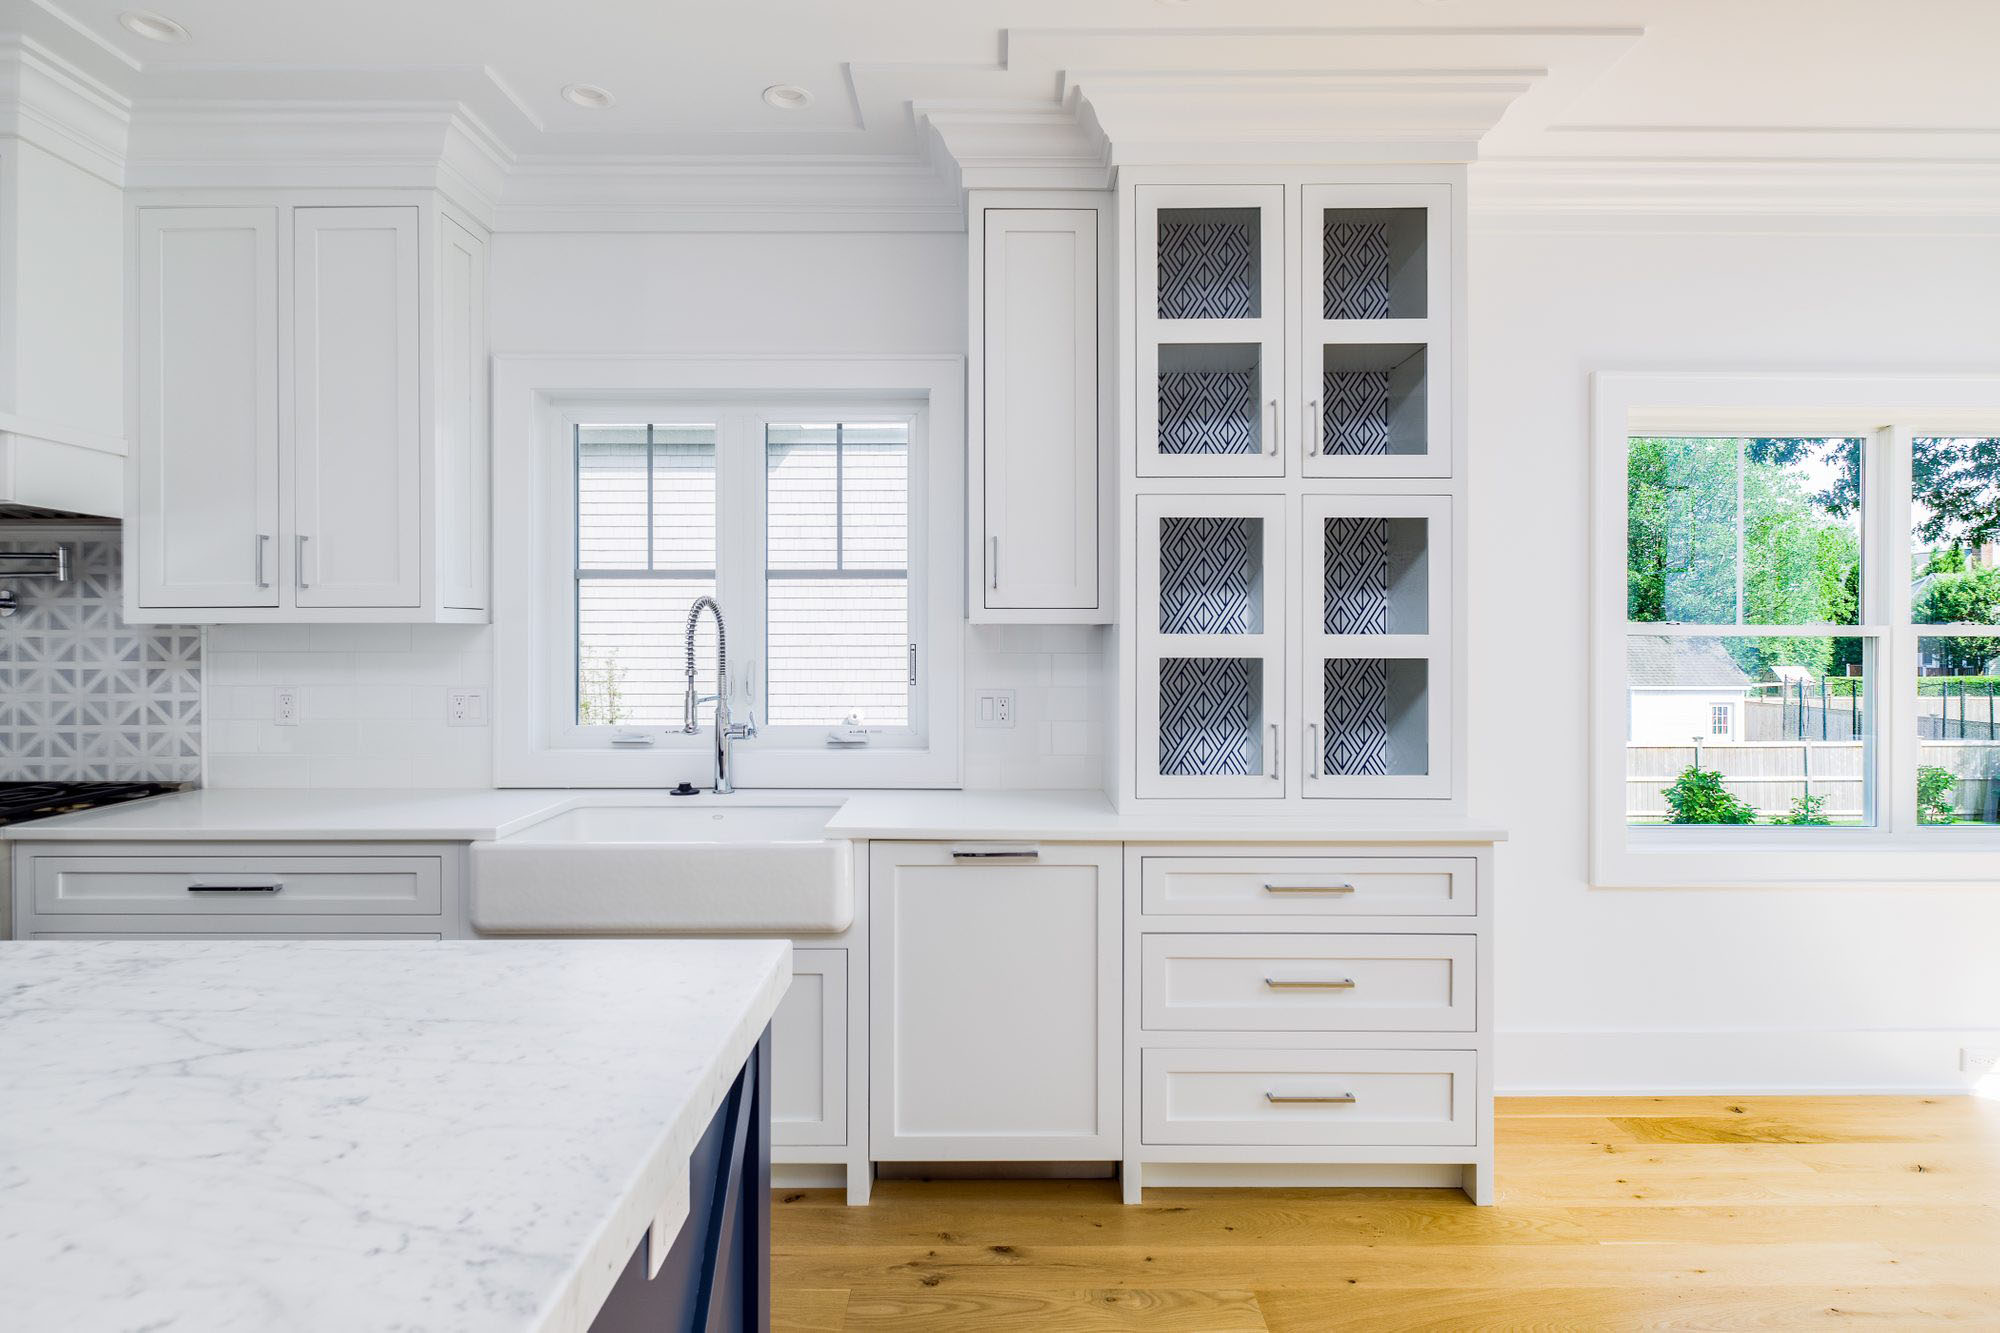 White kitchen with blue island and other blue accents. Shaker style cabinets.